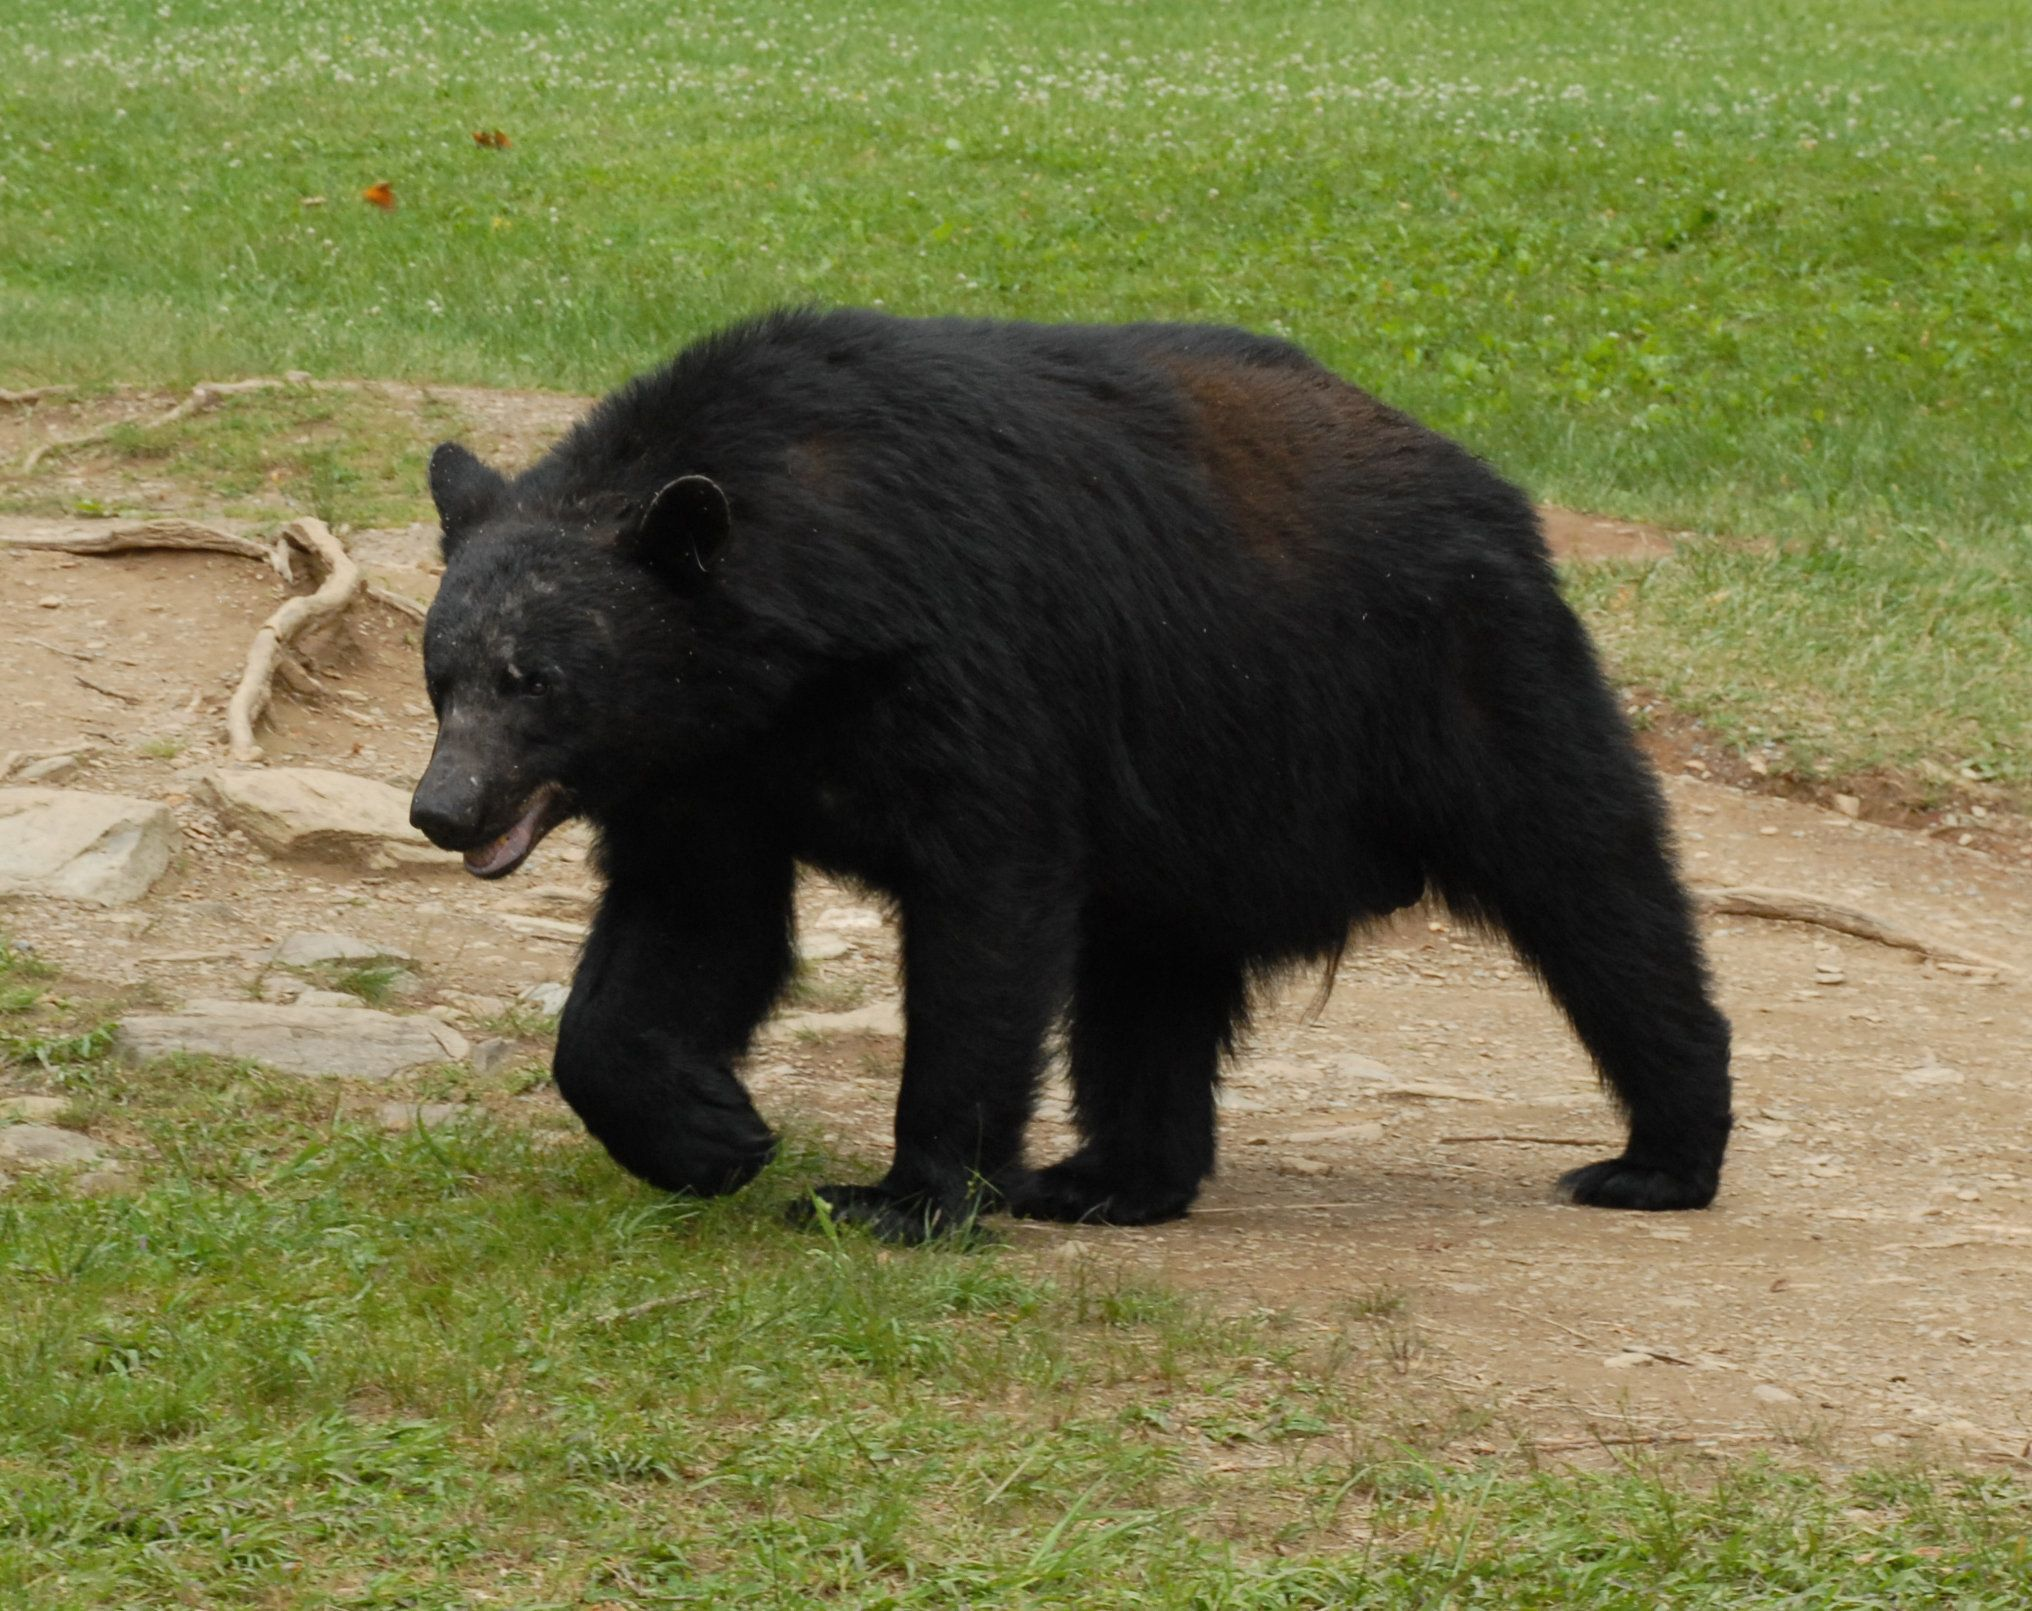 After dining on cicadas at Cades Cove in Great Smoky Mountains National Park, a boar black bear crosses a field while en route to his next chow hall. Black bears are commonly sighted in Cades Cove, a region in Tennessee once extensively farmed by 'mountain people.'